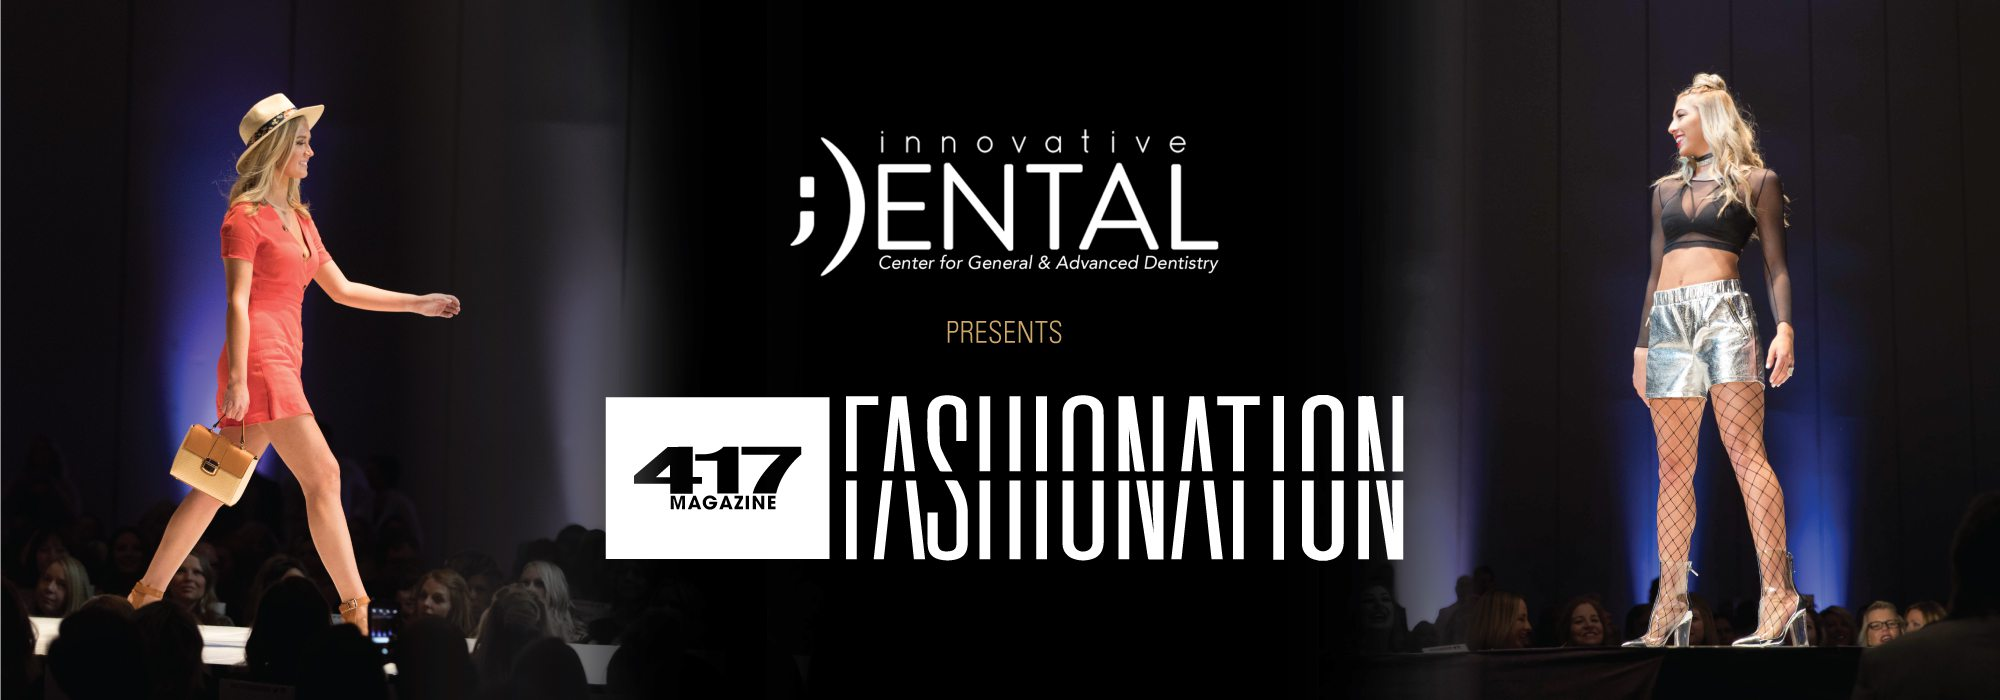 417 Magazine's Fashionation